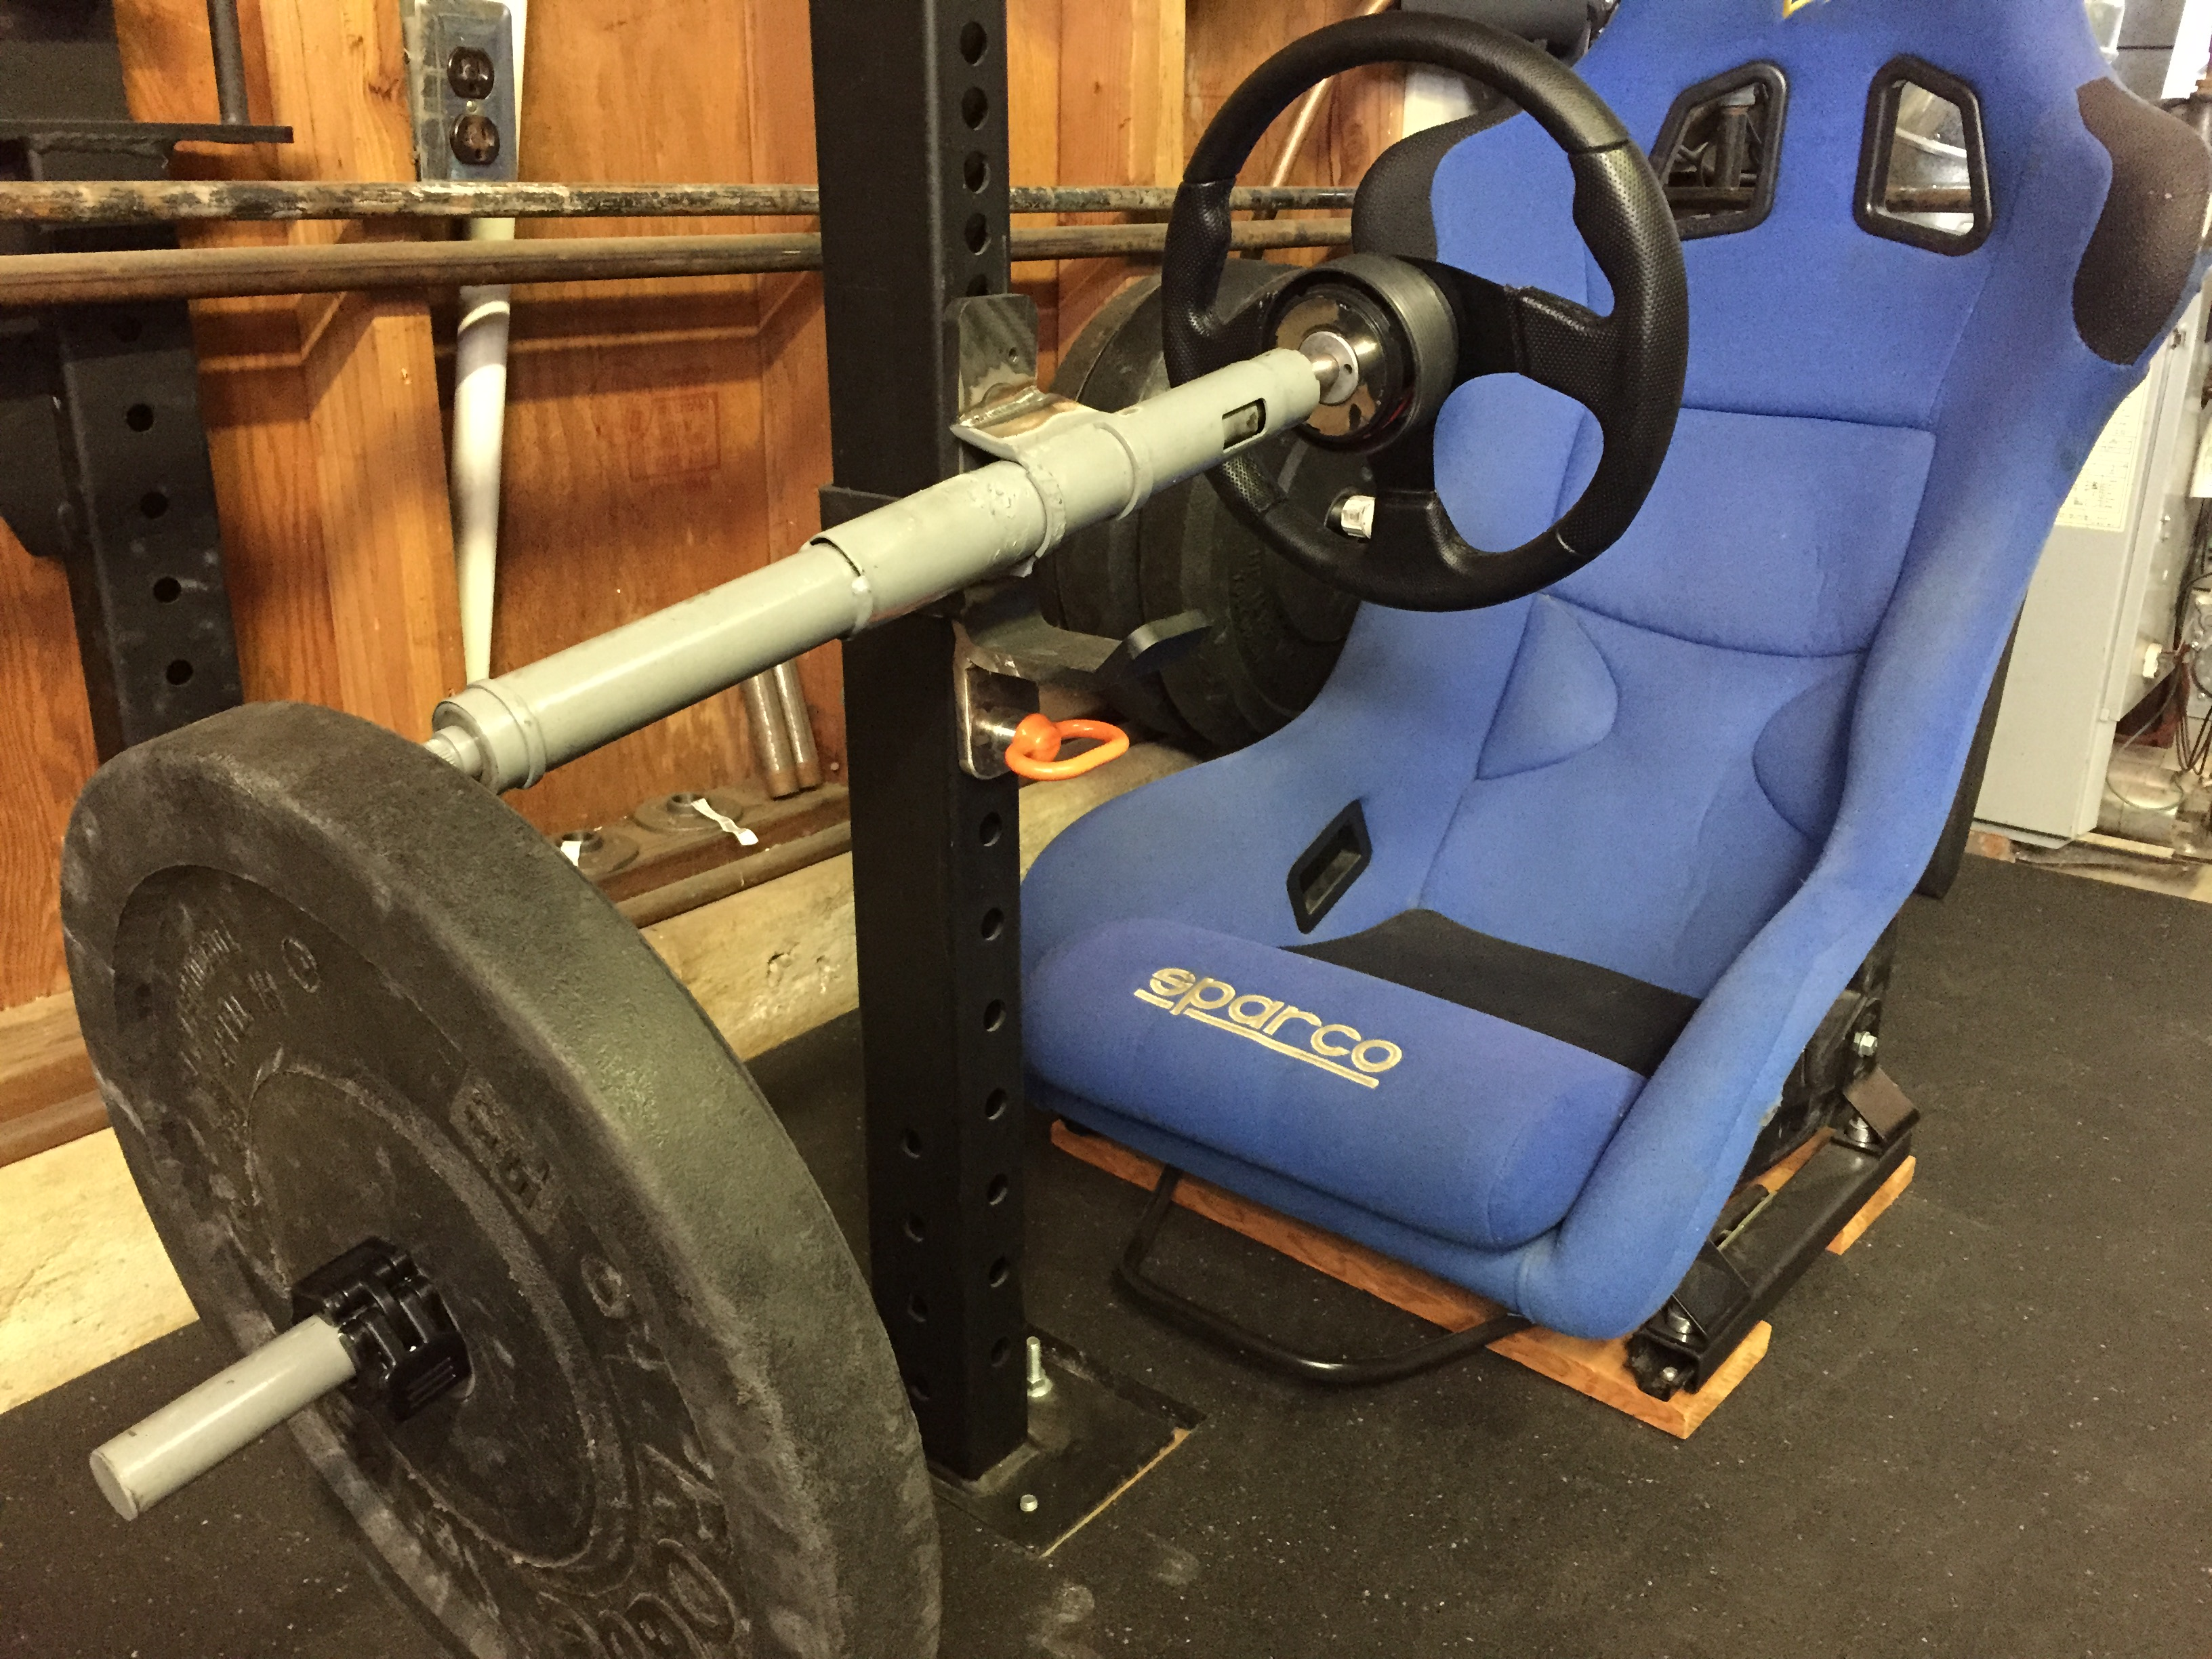 Garage Gym With Car Garage Gym Racing Exercise Steering Wheel Ghidinelli